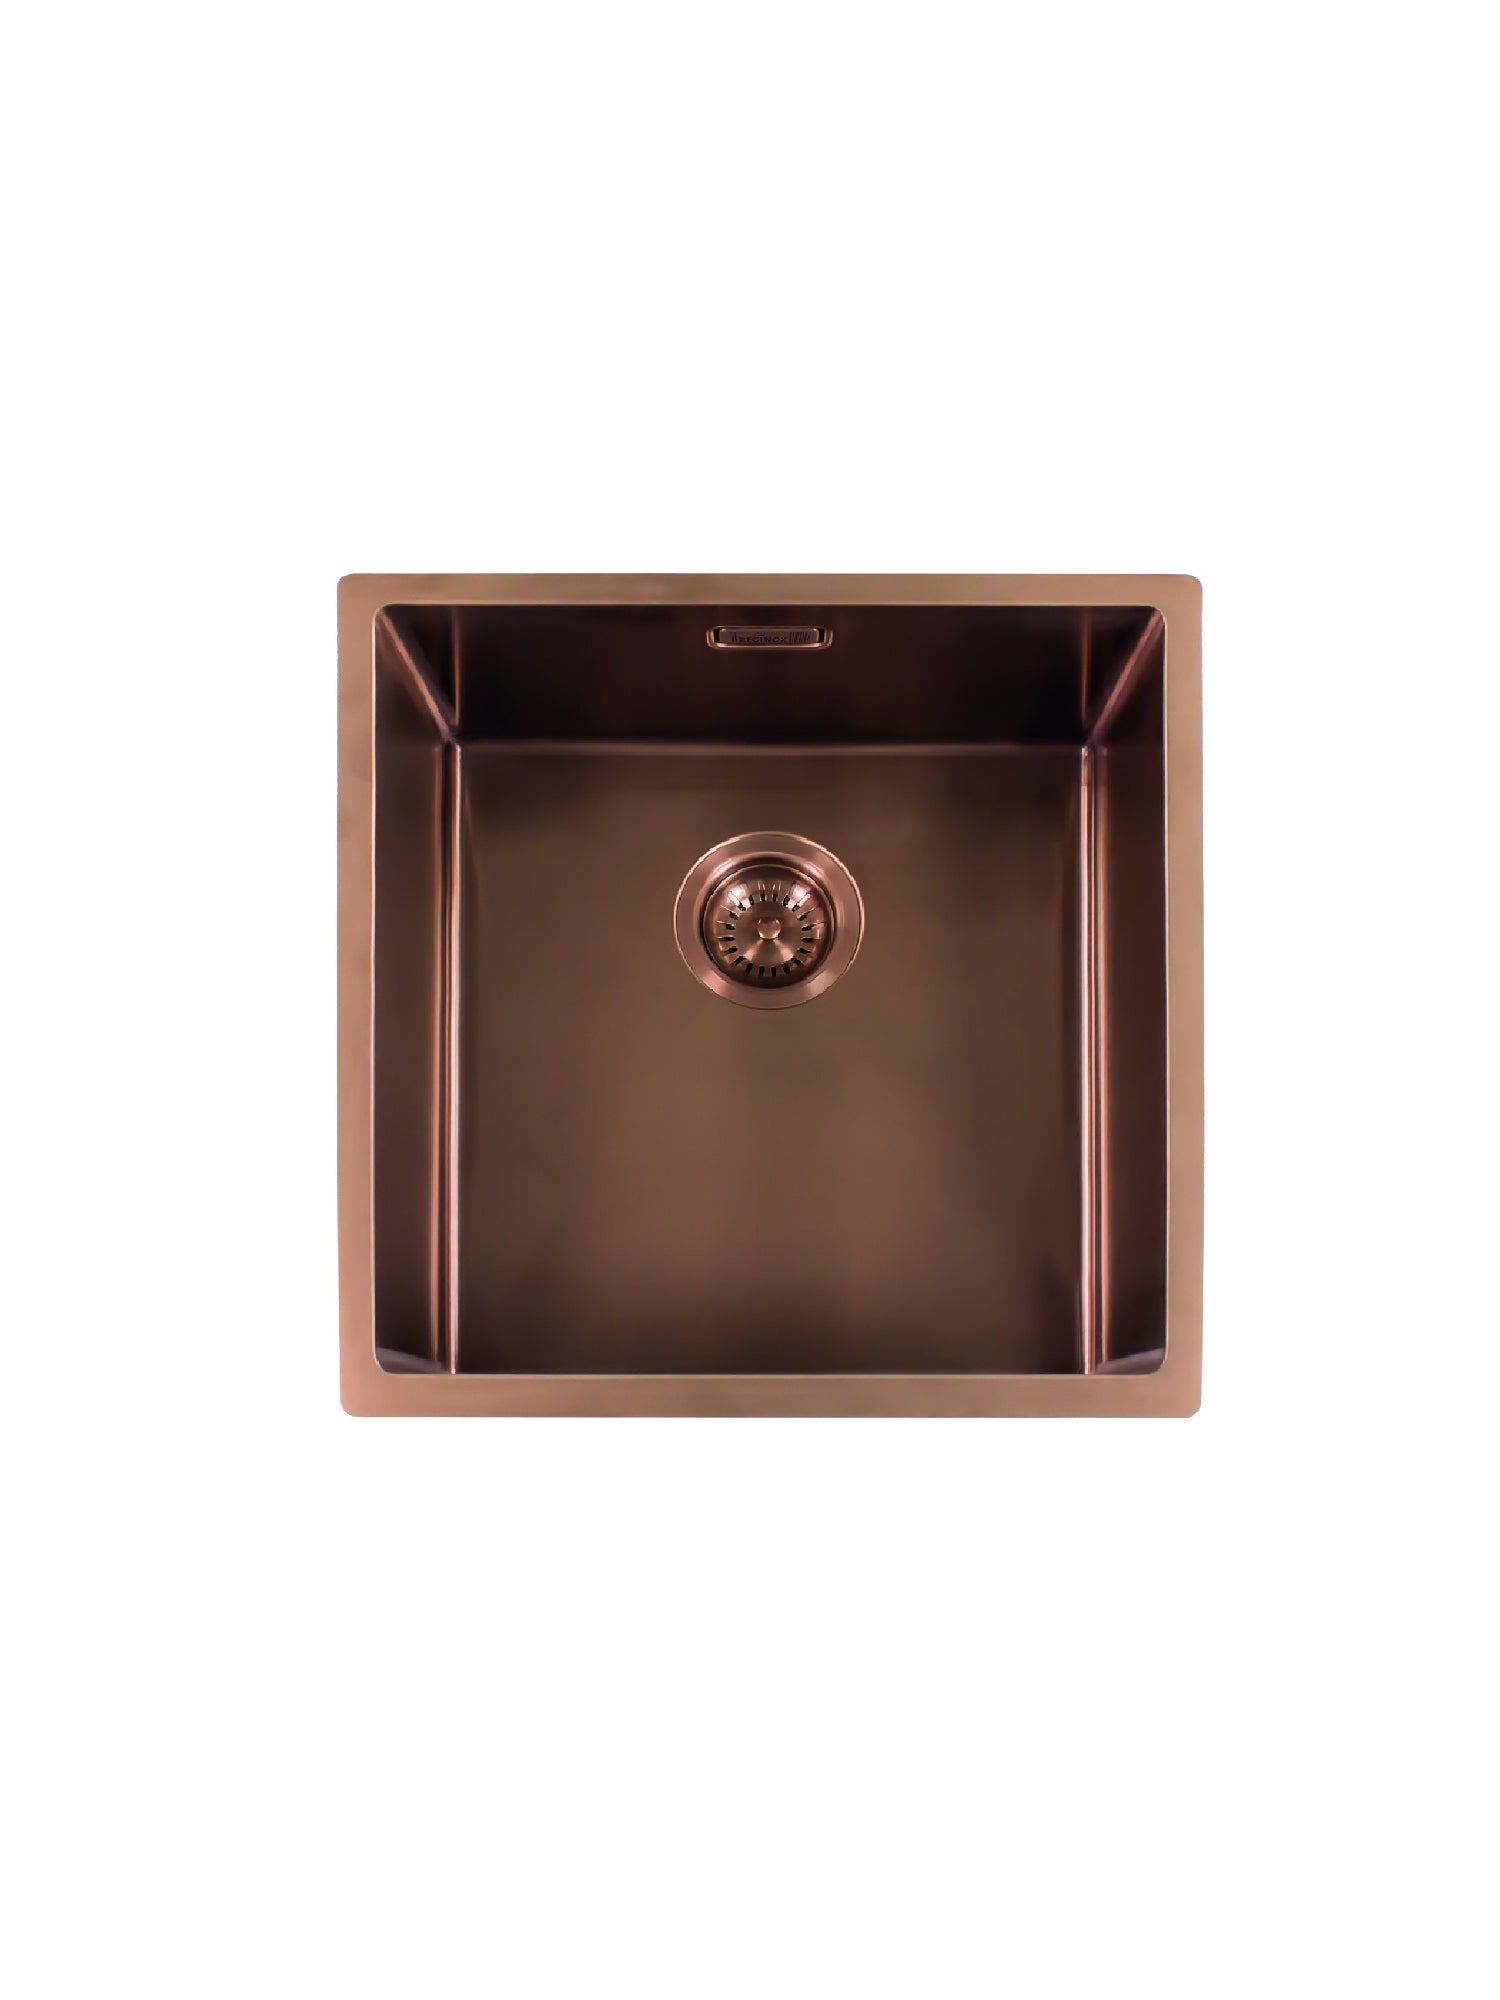 Reginox Miami Copper 50X40L Single Bowl Kitchen Sink